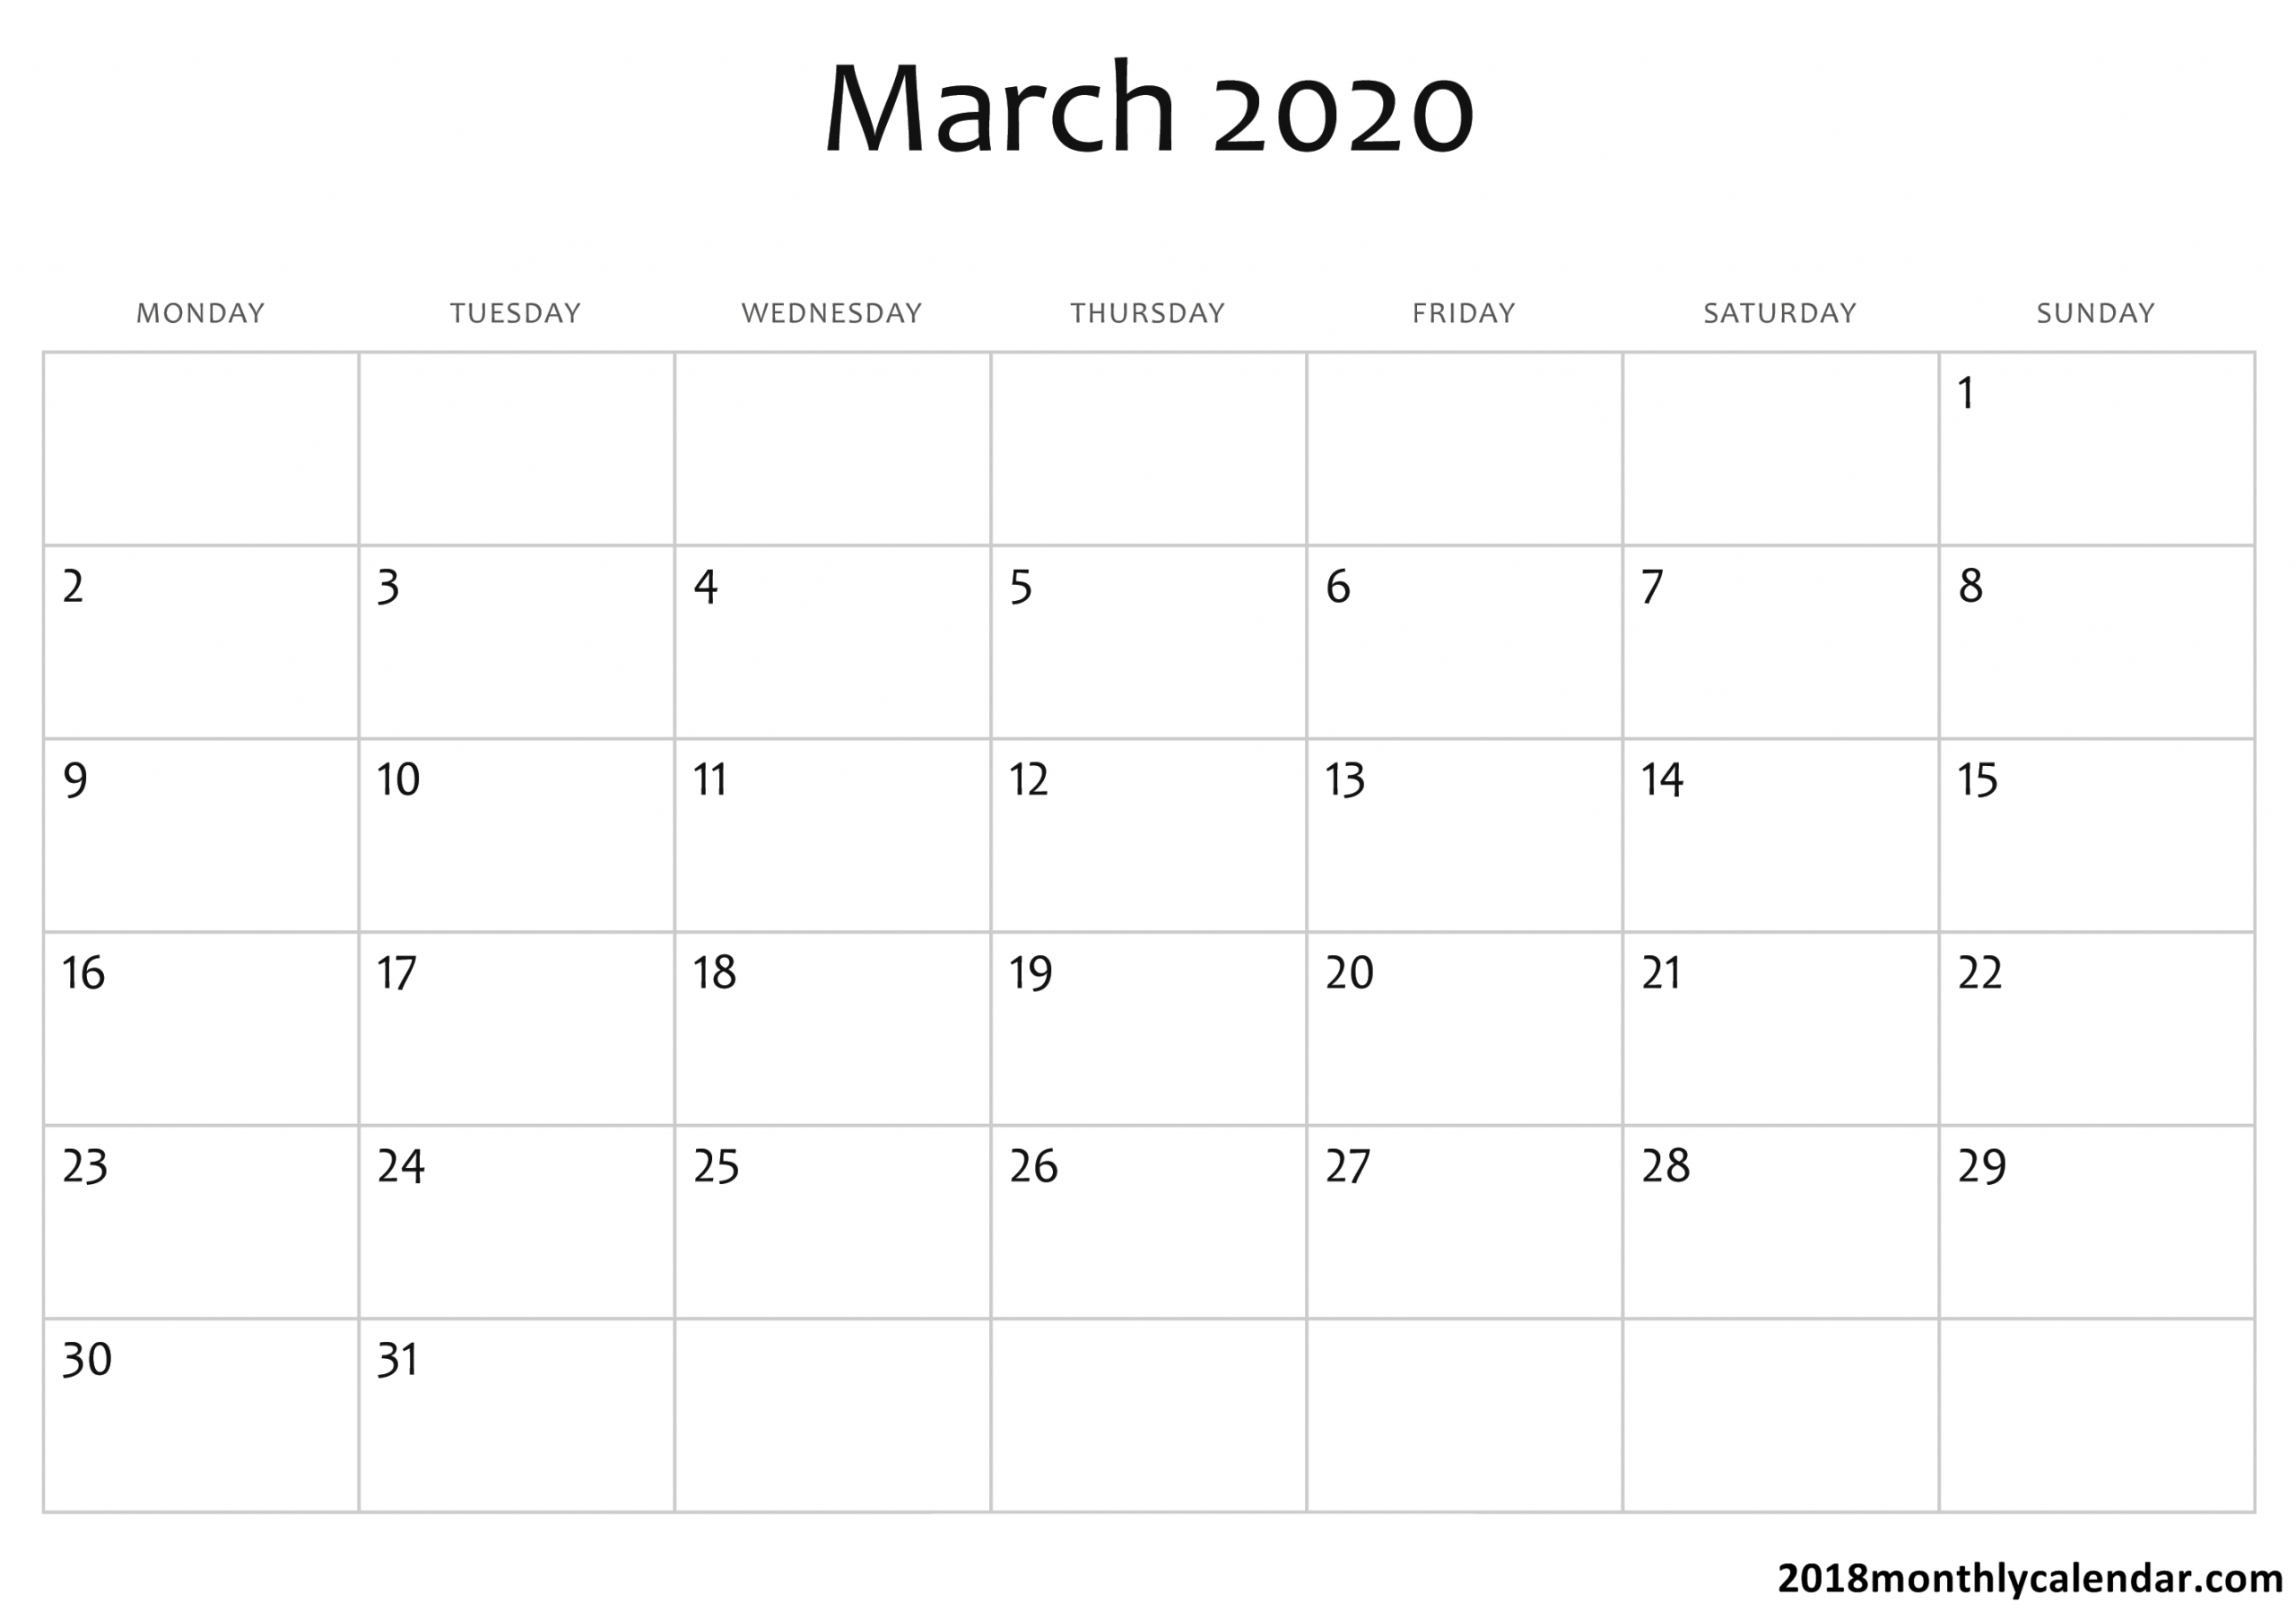 2020 Calender I Can Edit   Calendar Template Printable Calender You Cann Edit With Holidays On It